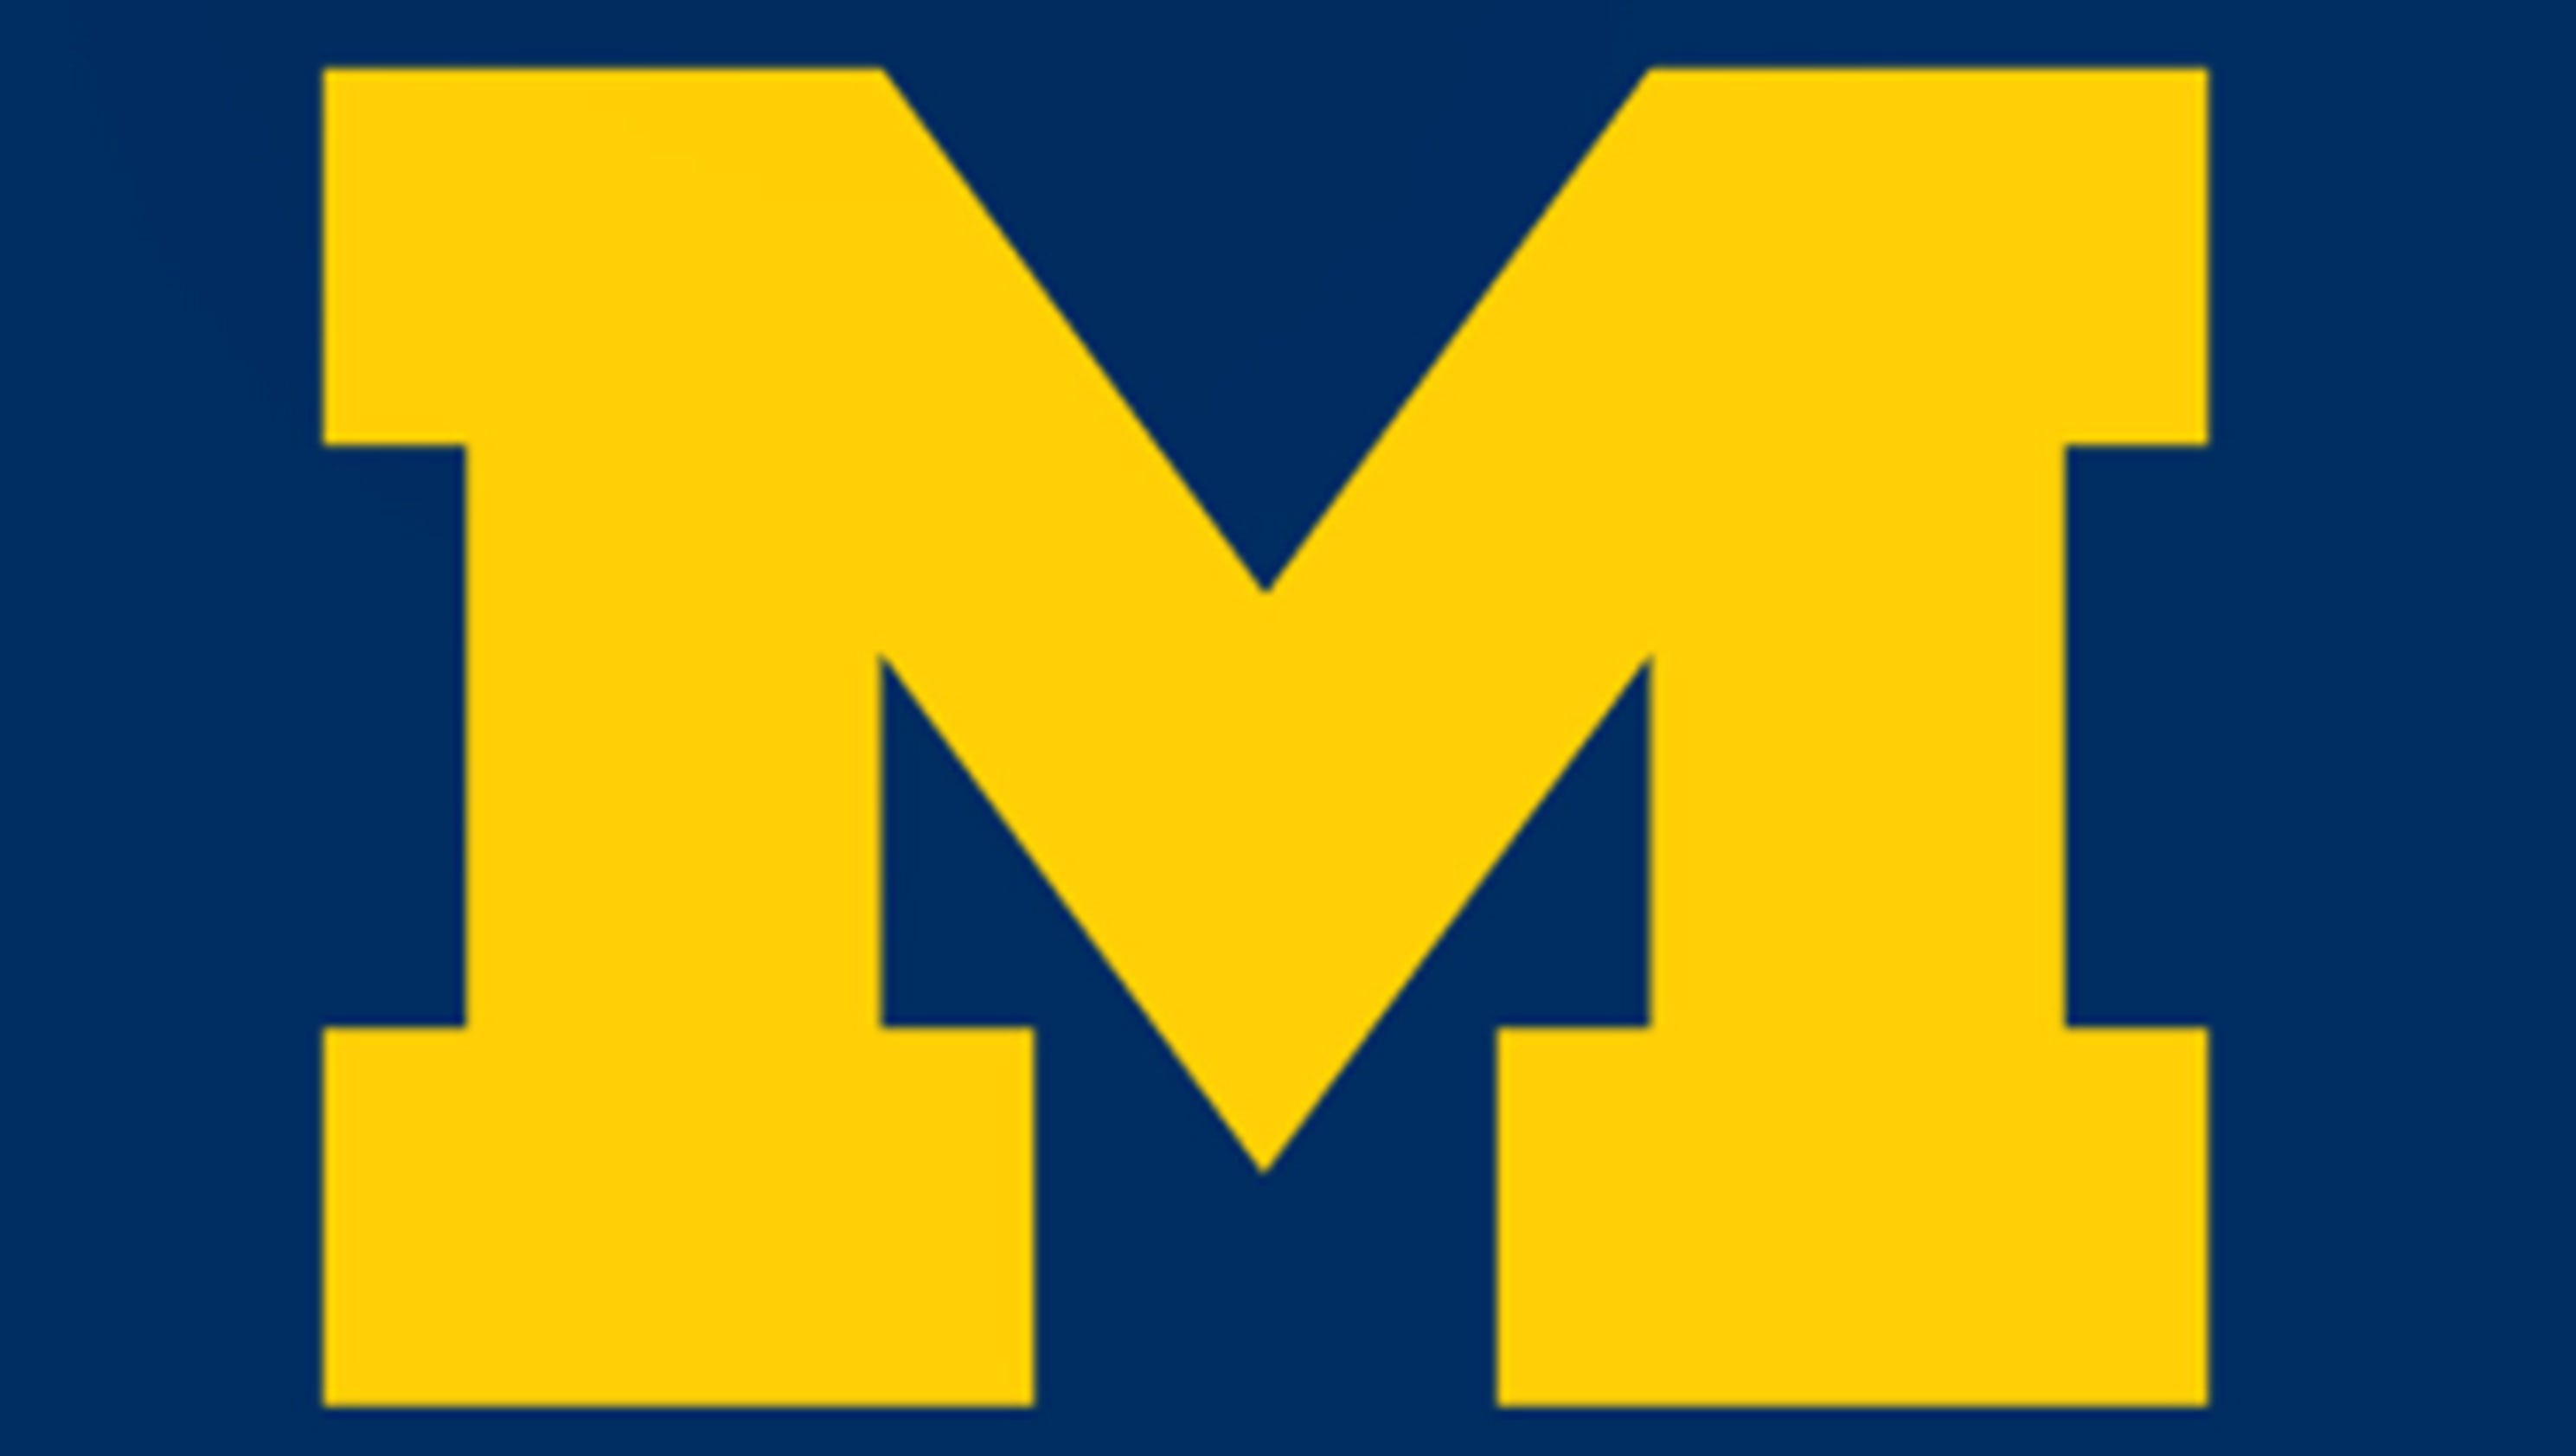 Michigan football spends 500k for meijer food cards to feed players buycottarizona